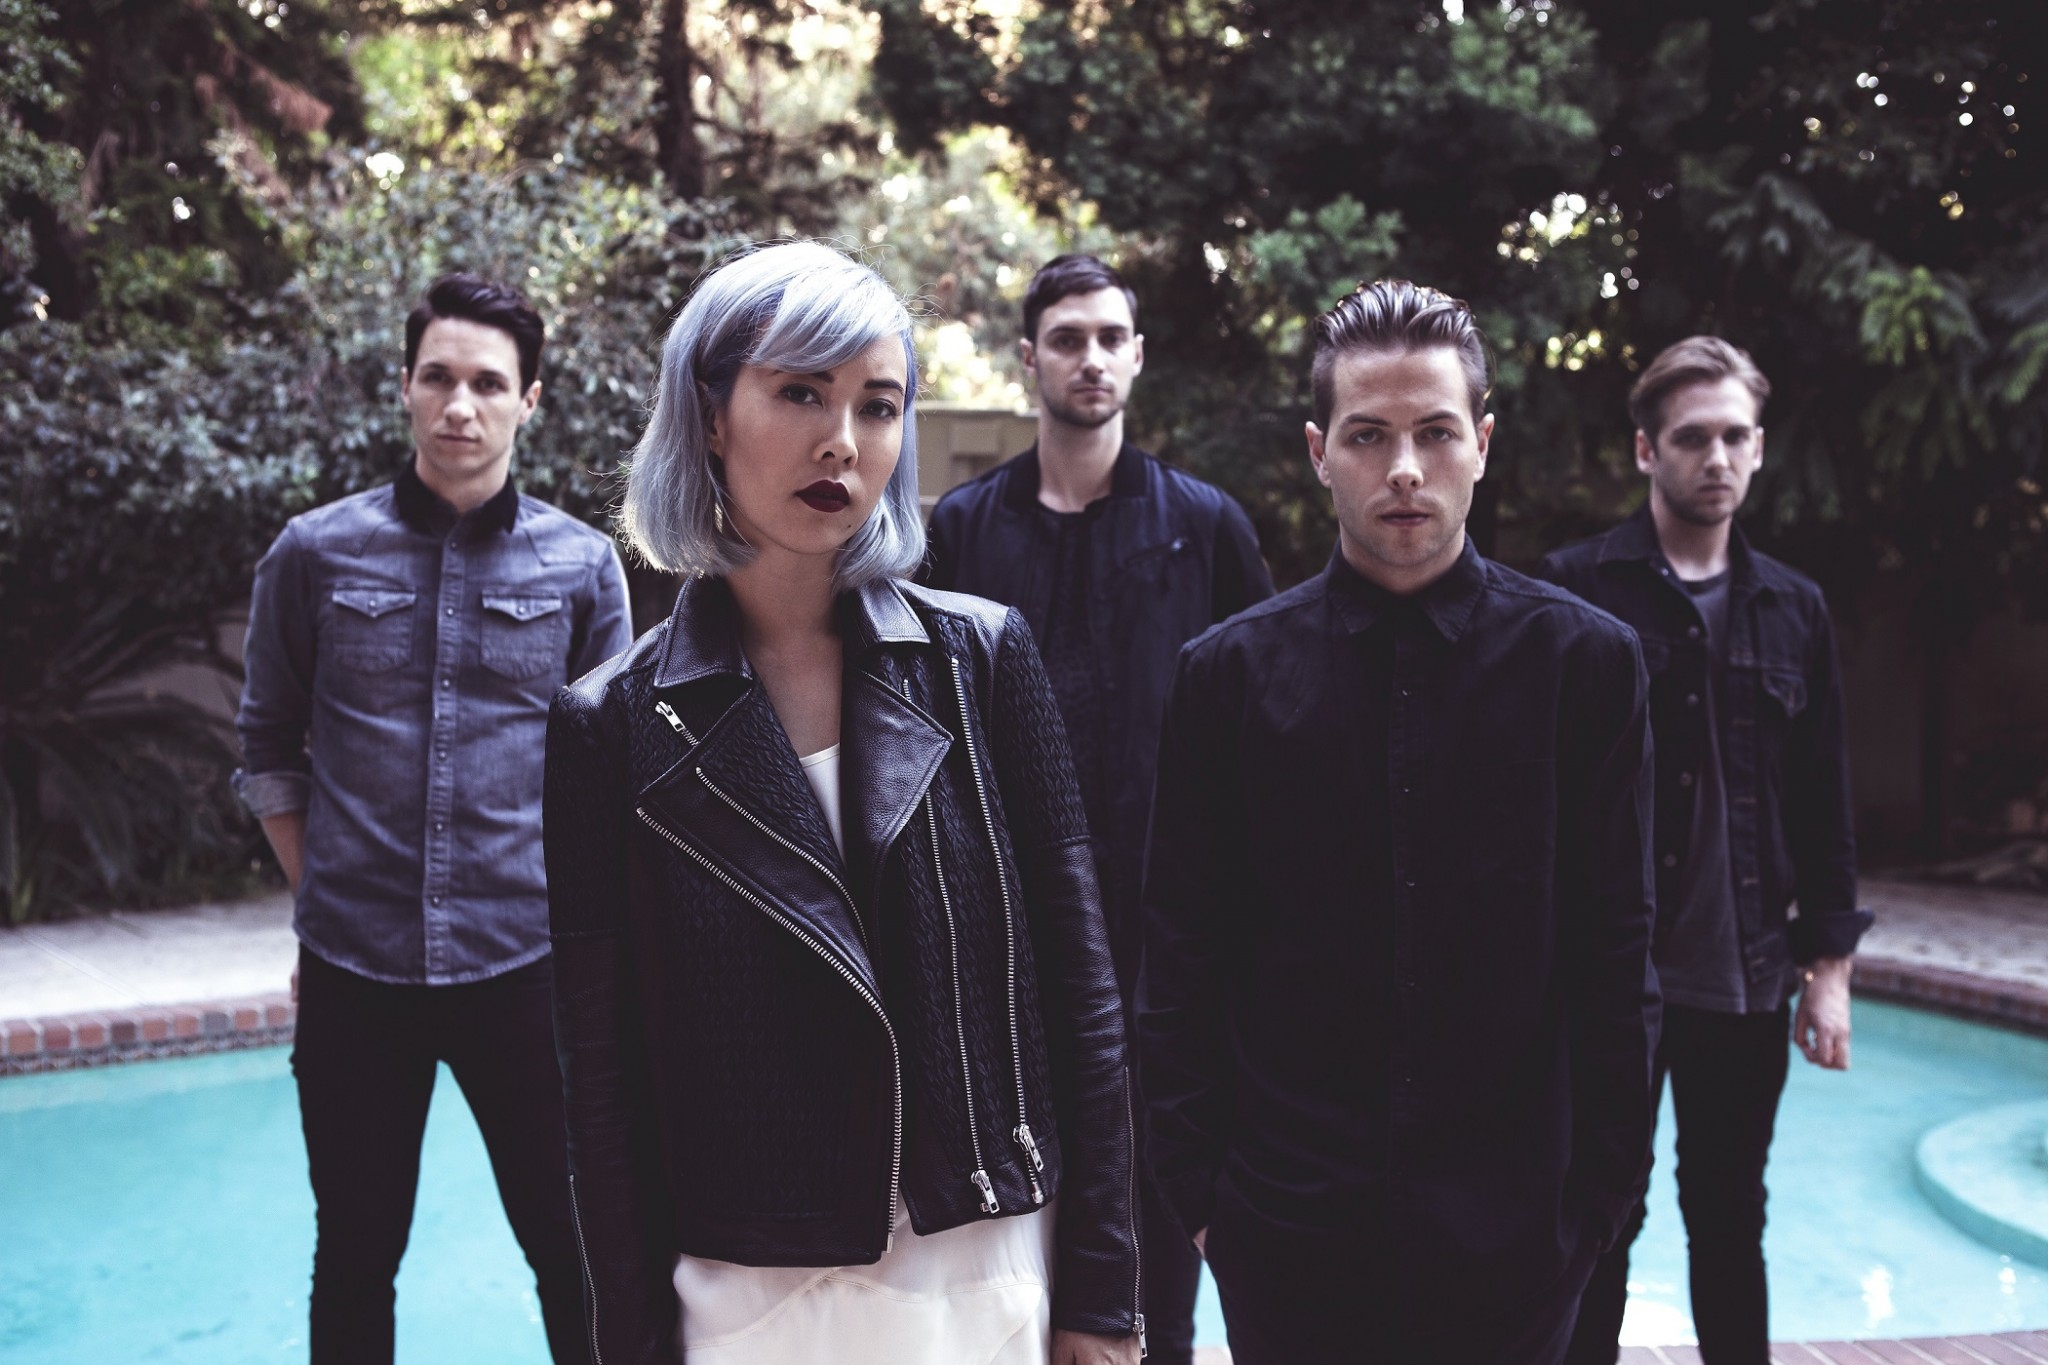 25 Indie/Alternative Artists That Should Be On Your Summer